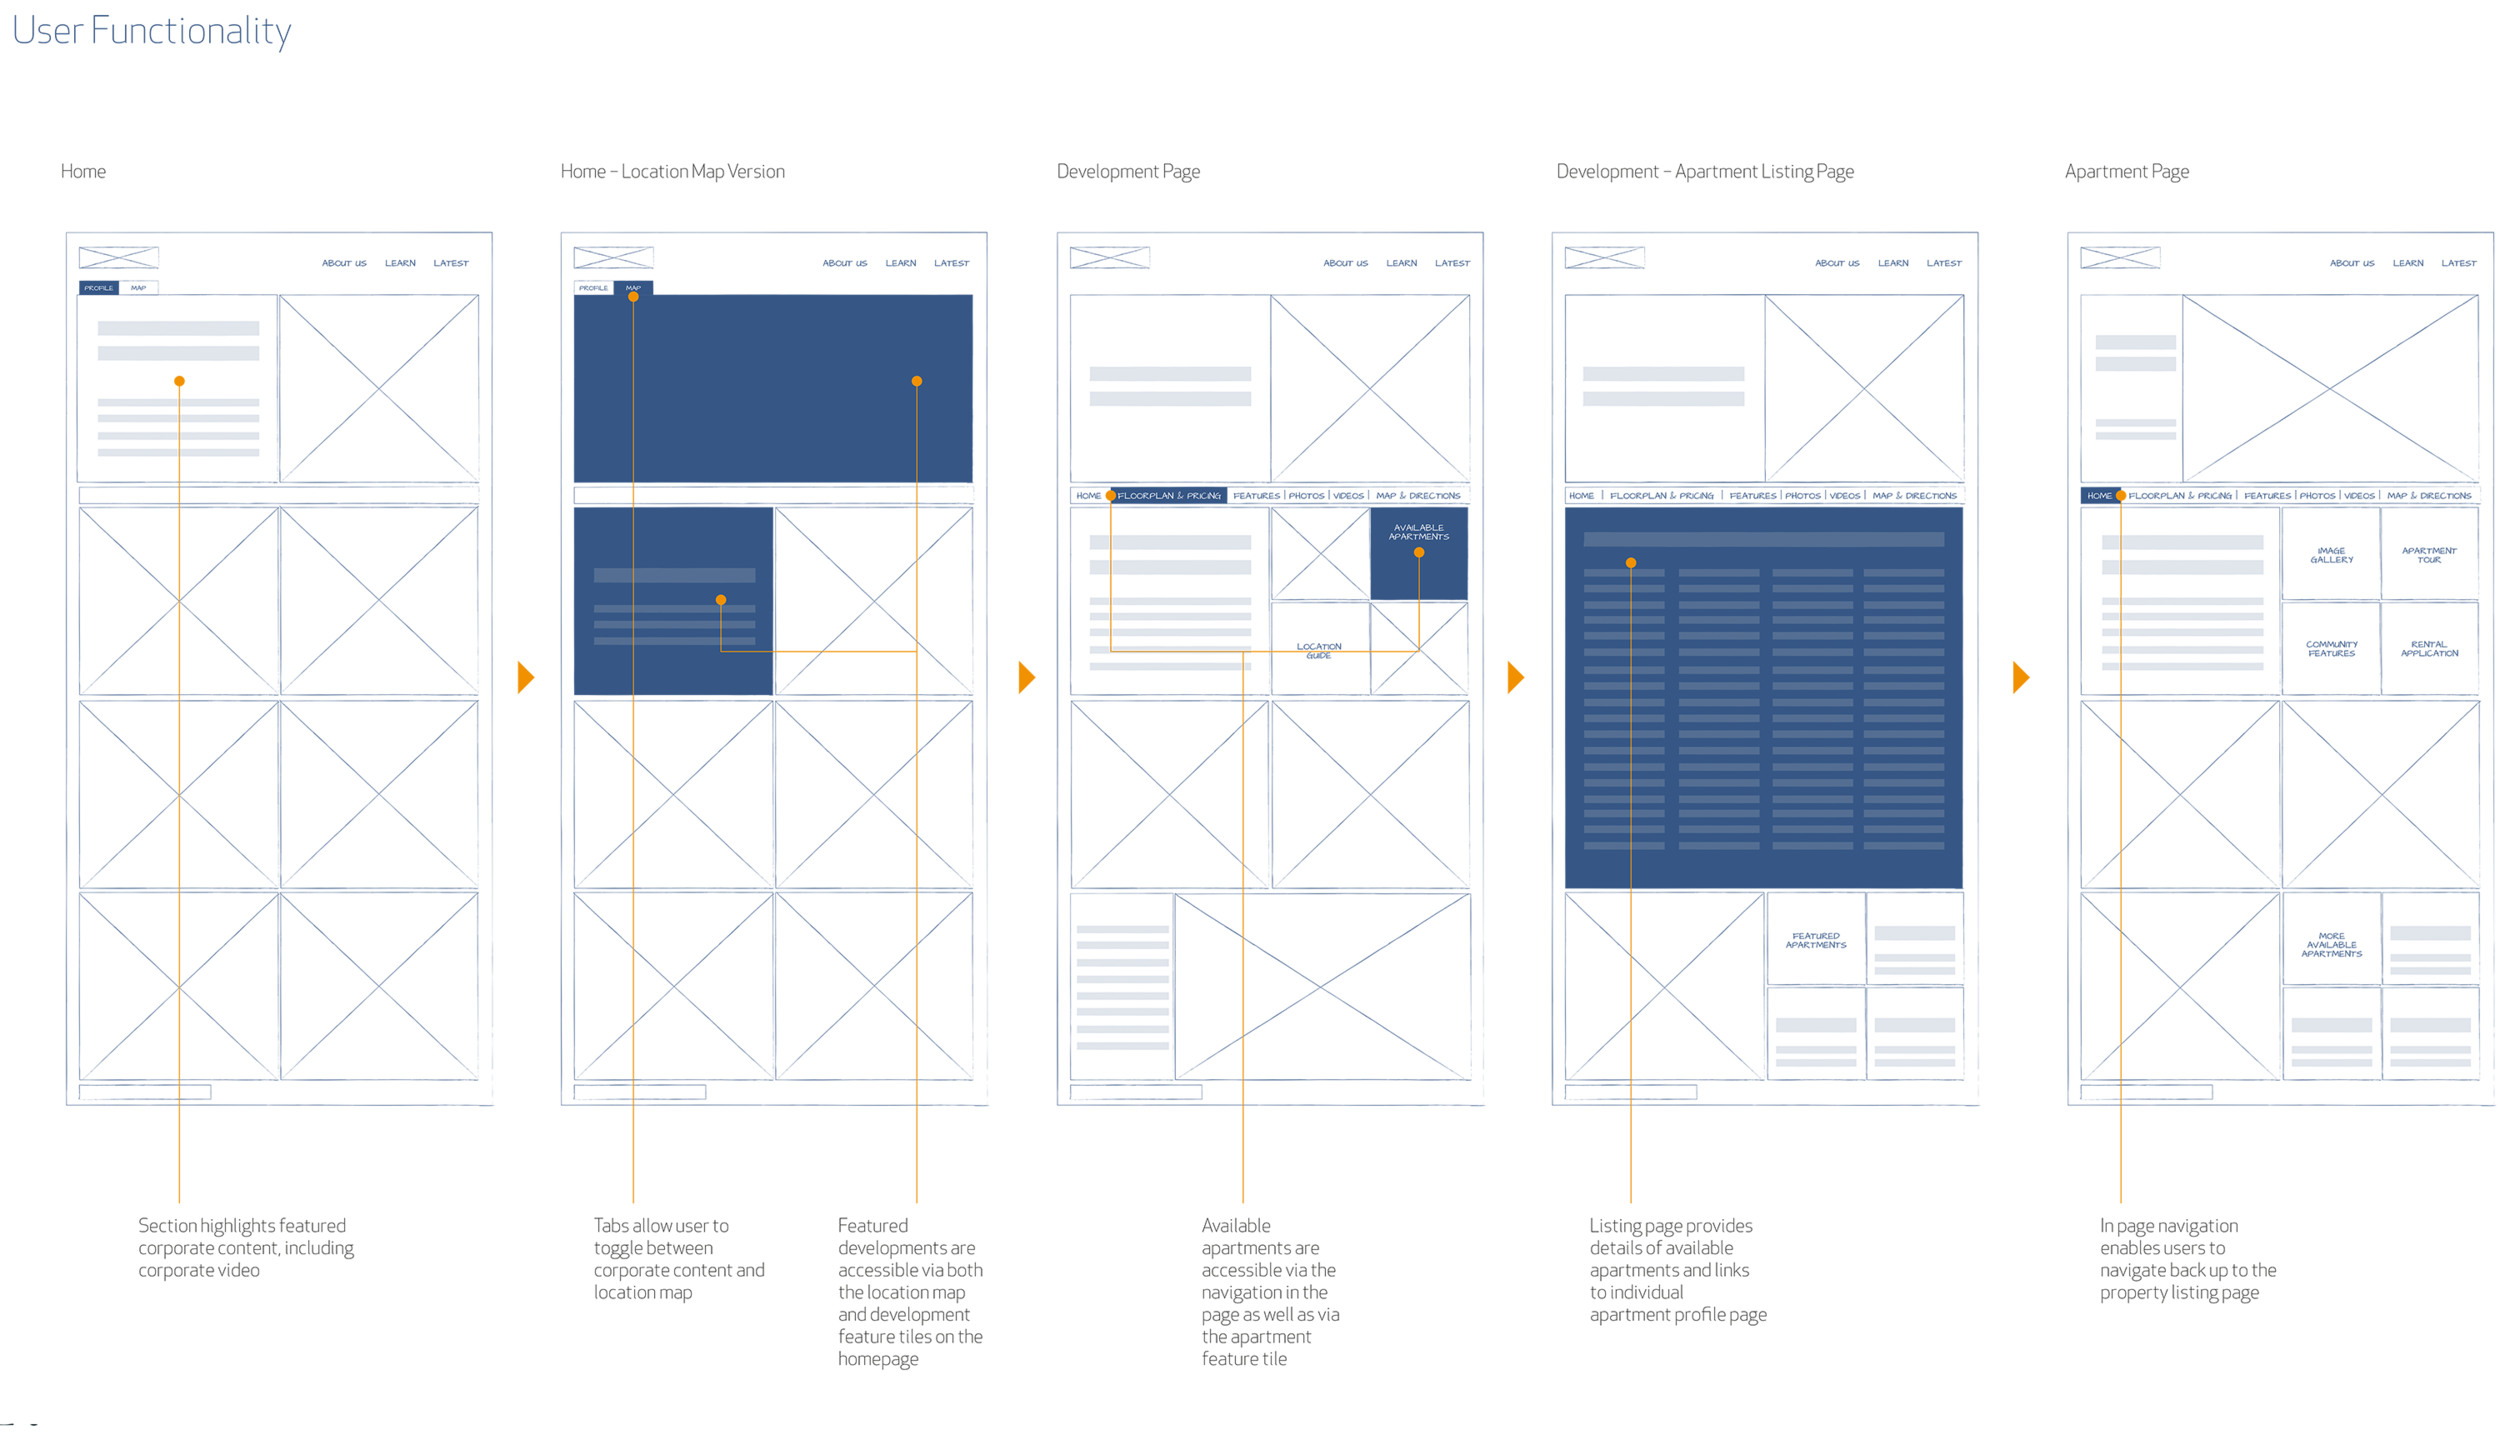 Part of the User Flow and Wireframing developed for the project